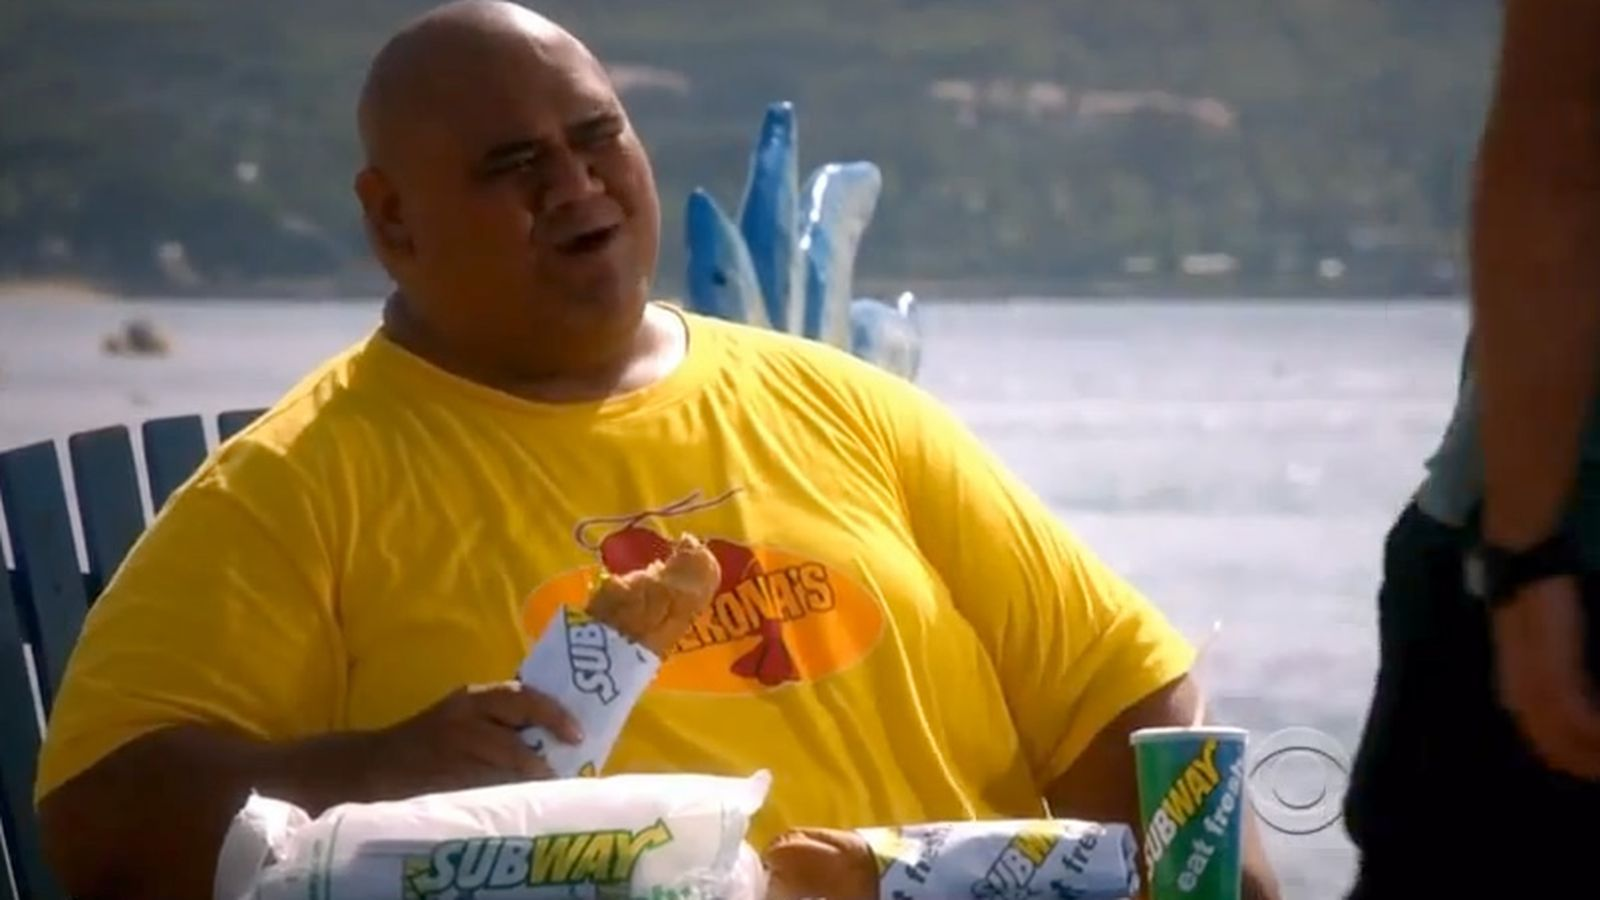 subway-hawaii-five-o-0